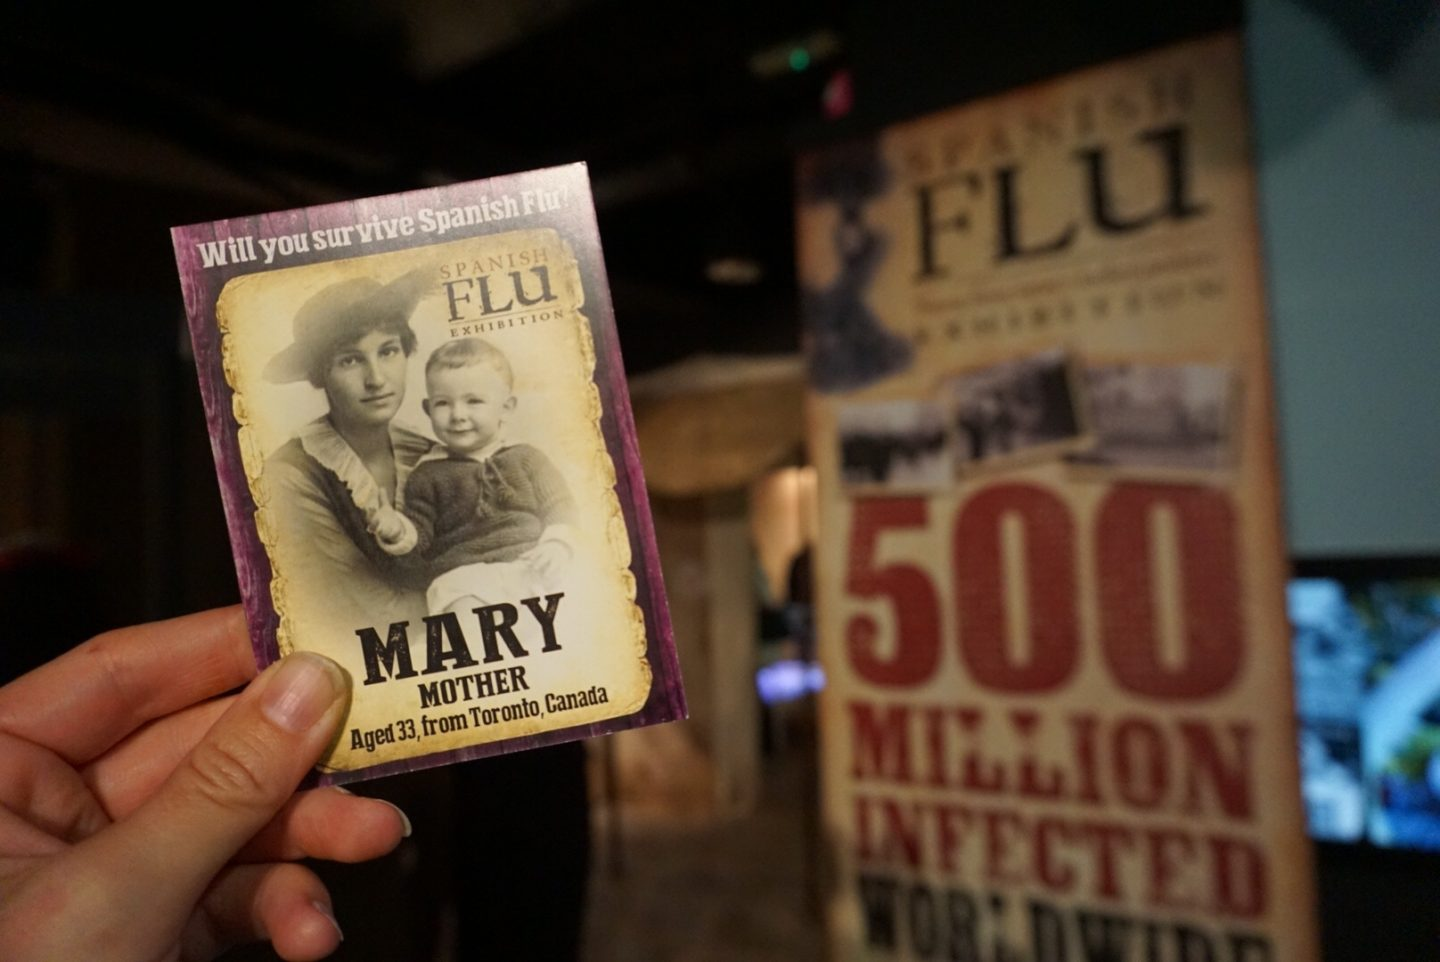 Spanish Flu at the Florence Nightingale Museum